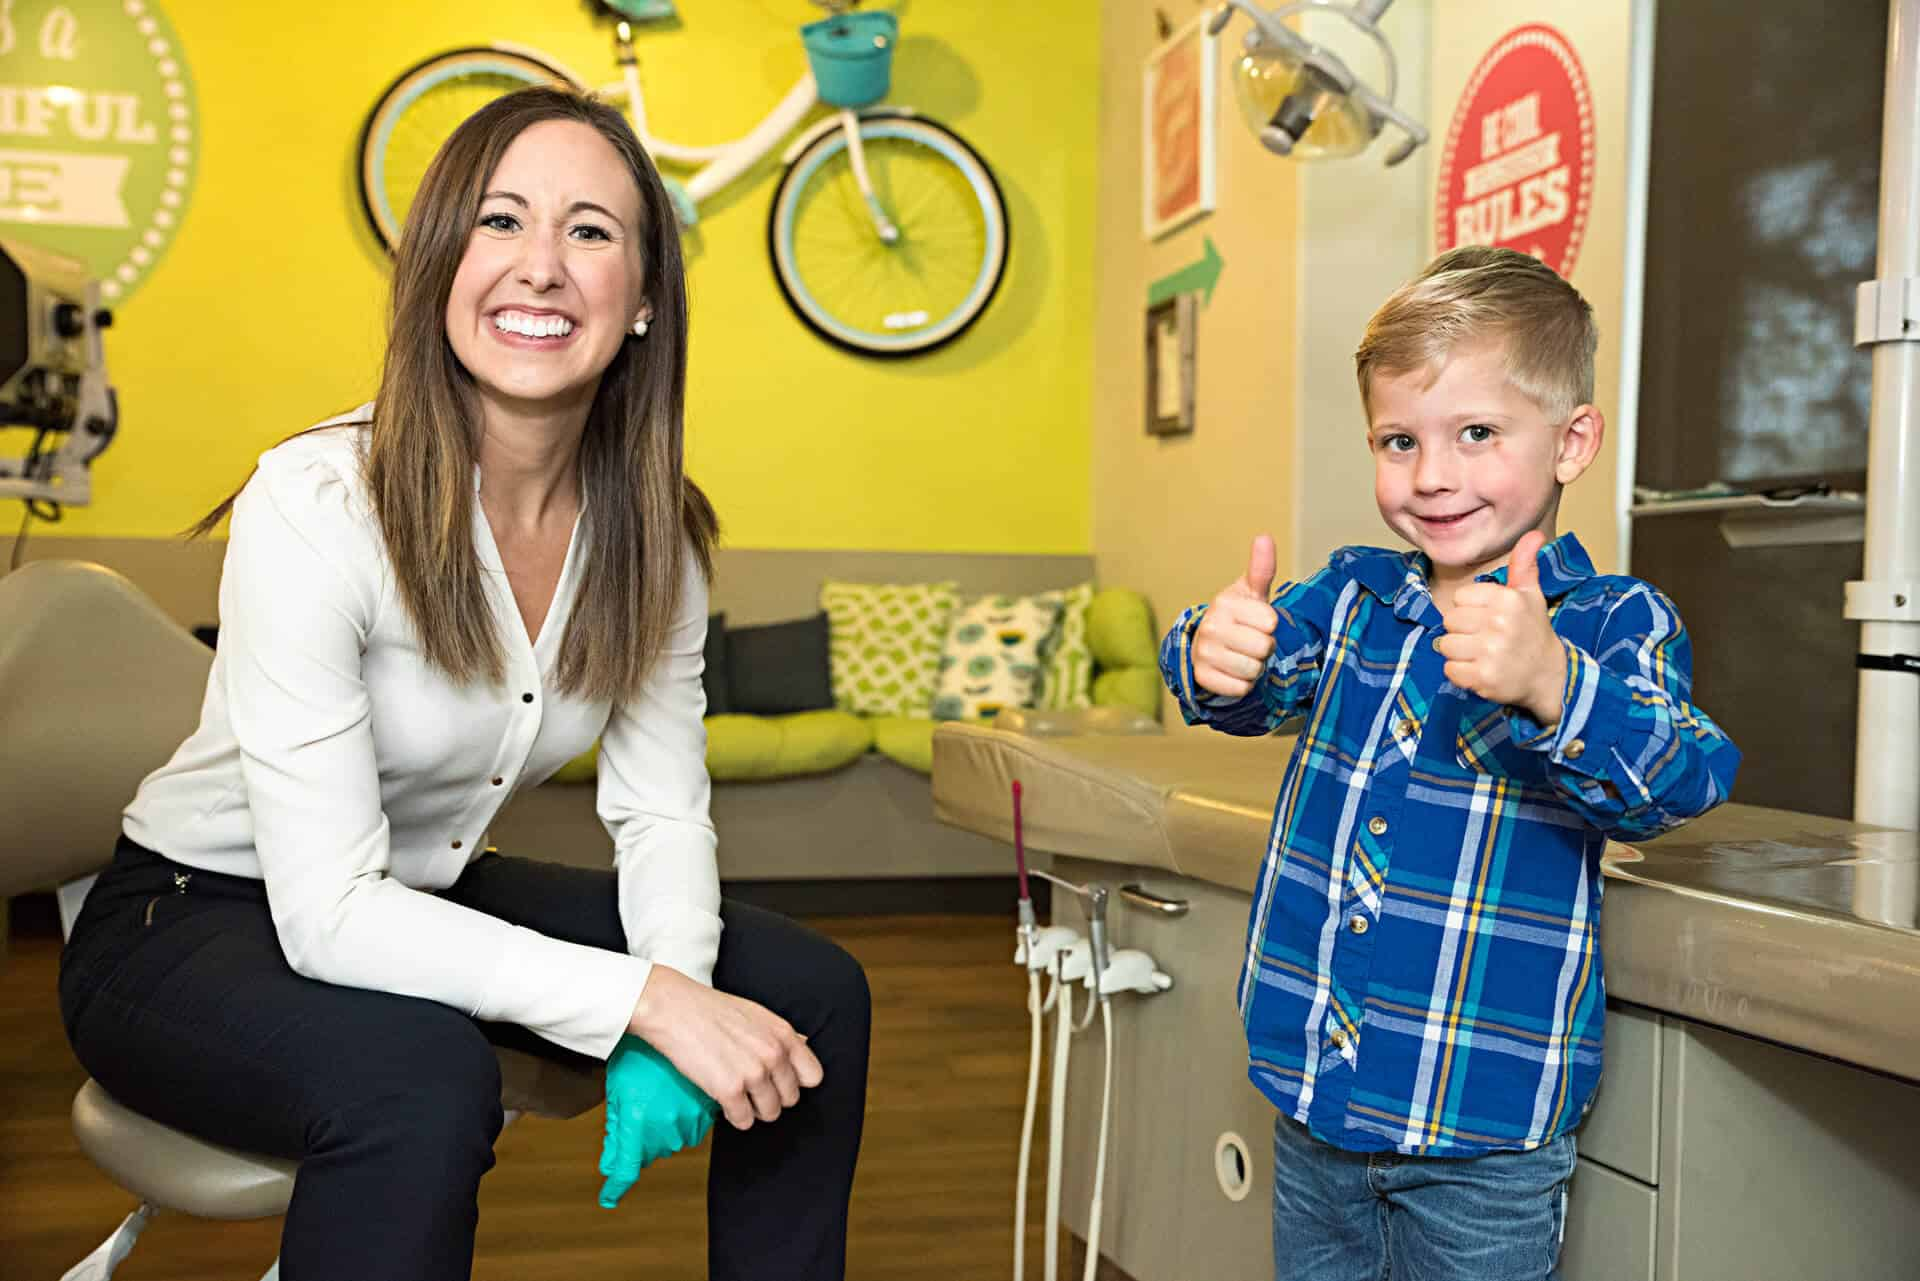 A young patient standing next to the treatment bed wearing blue jeans and a plaid blue flannel shirt smiling and signaling holding both his thumbs up while the dentist  Dr. Erin Saucier dressed in jeans and white blouse is sitting in the doctor chair next to the boy, smiling and leaning forward, her right hand is crossed over  her green exam gloved left hand, the view of the yellow bright wall behind her showing the big real bicycle hanging from the wall next to a retro round lime green sign and the long seating bench covered with lime green base cushion and back cushions in lime green, black and white varied patterns